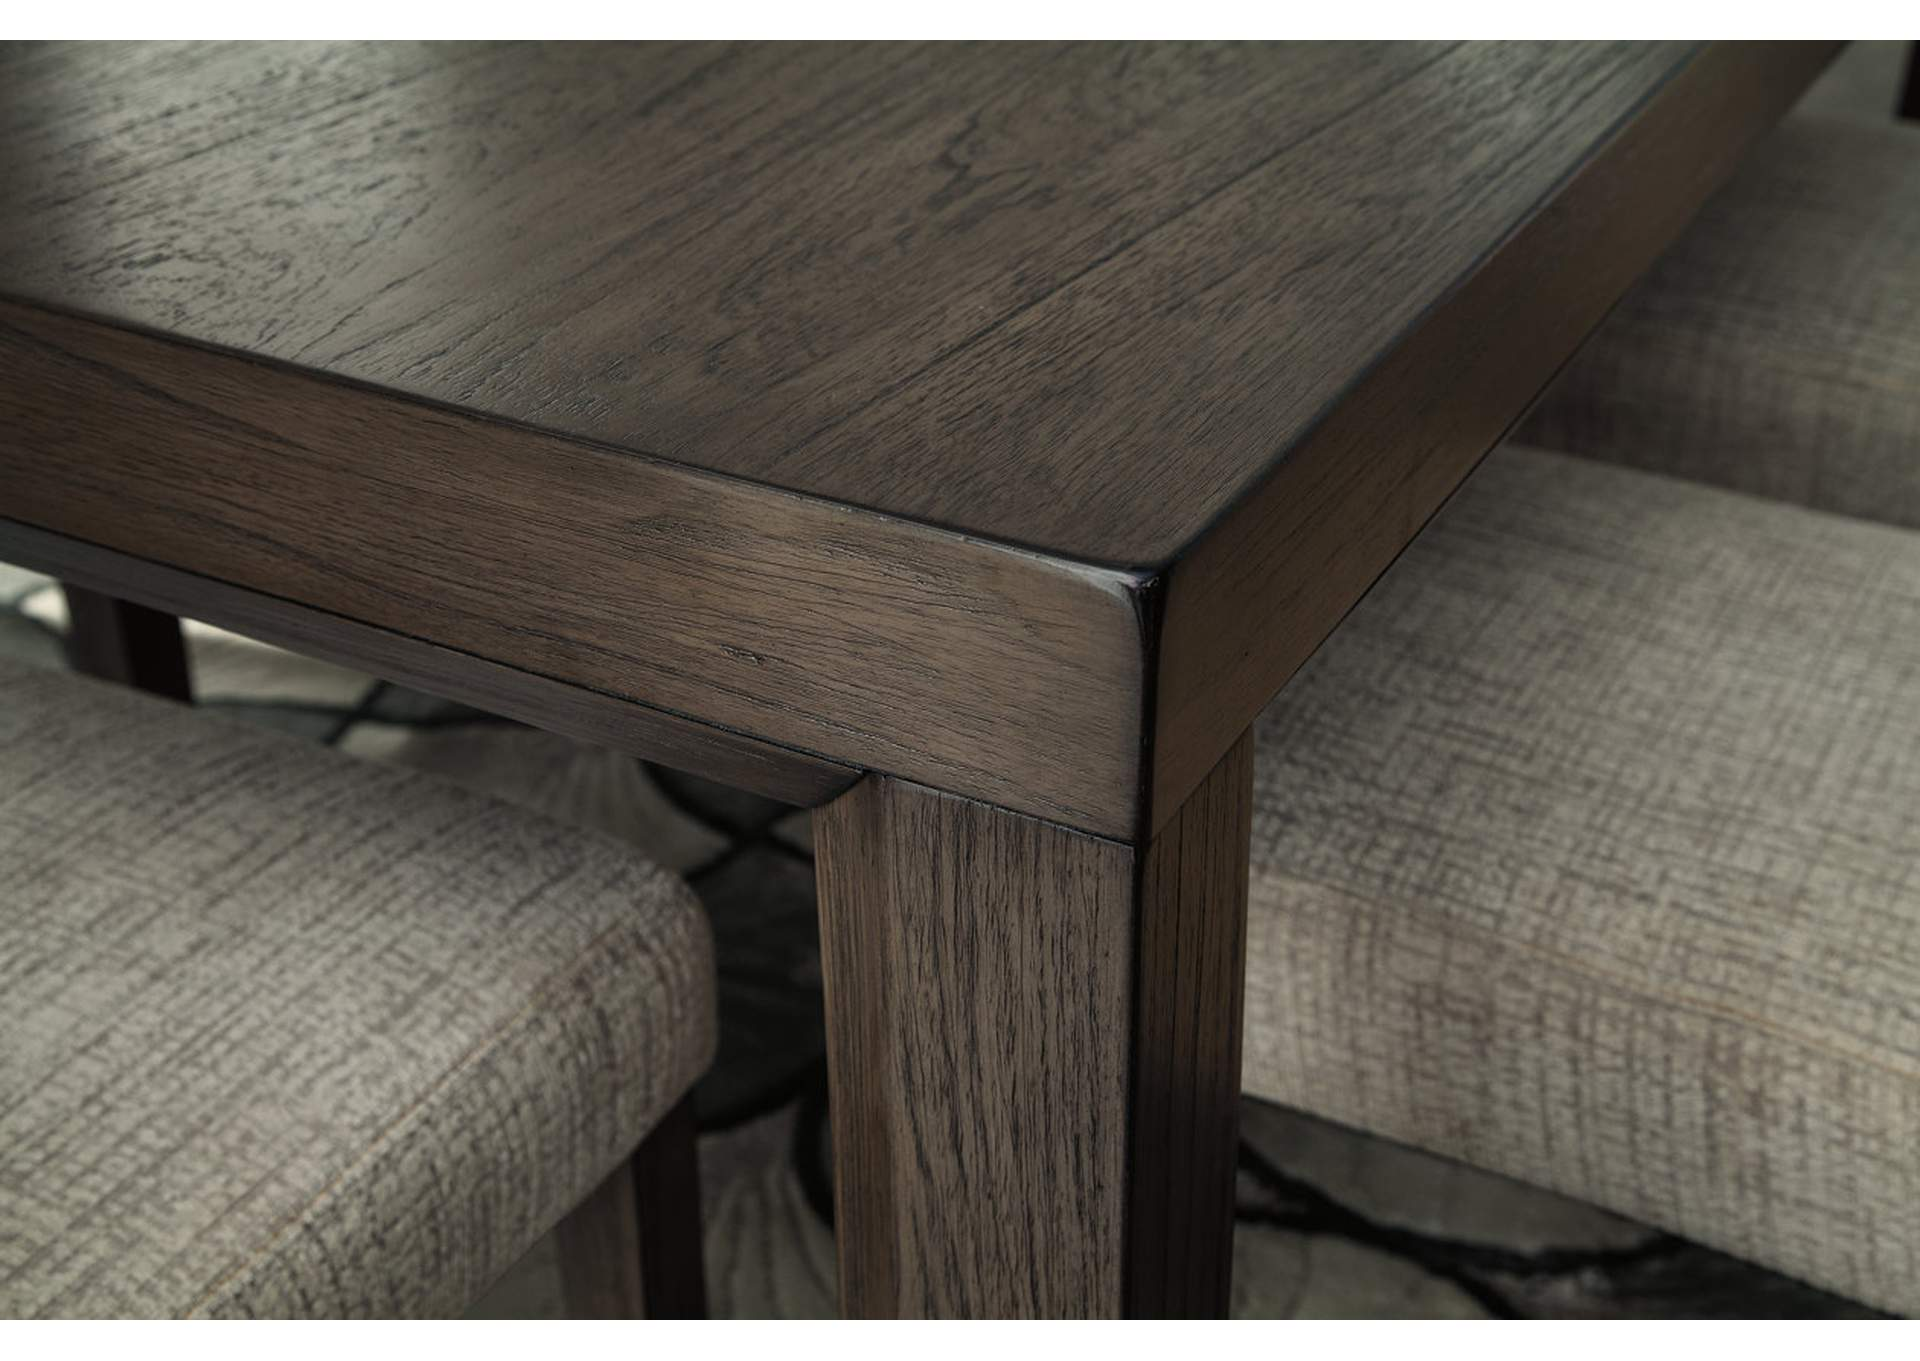 Deylin Dining Room Table Ashley Furniture Homestore Independently Owned And Operated By Dash Square